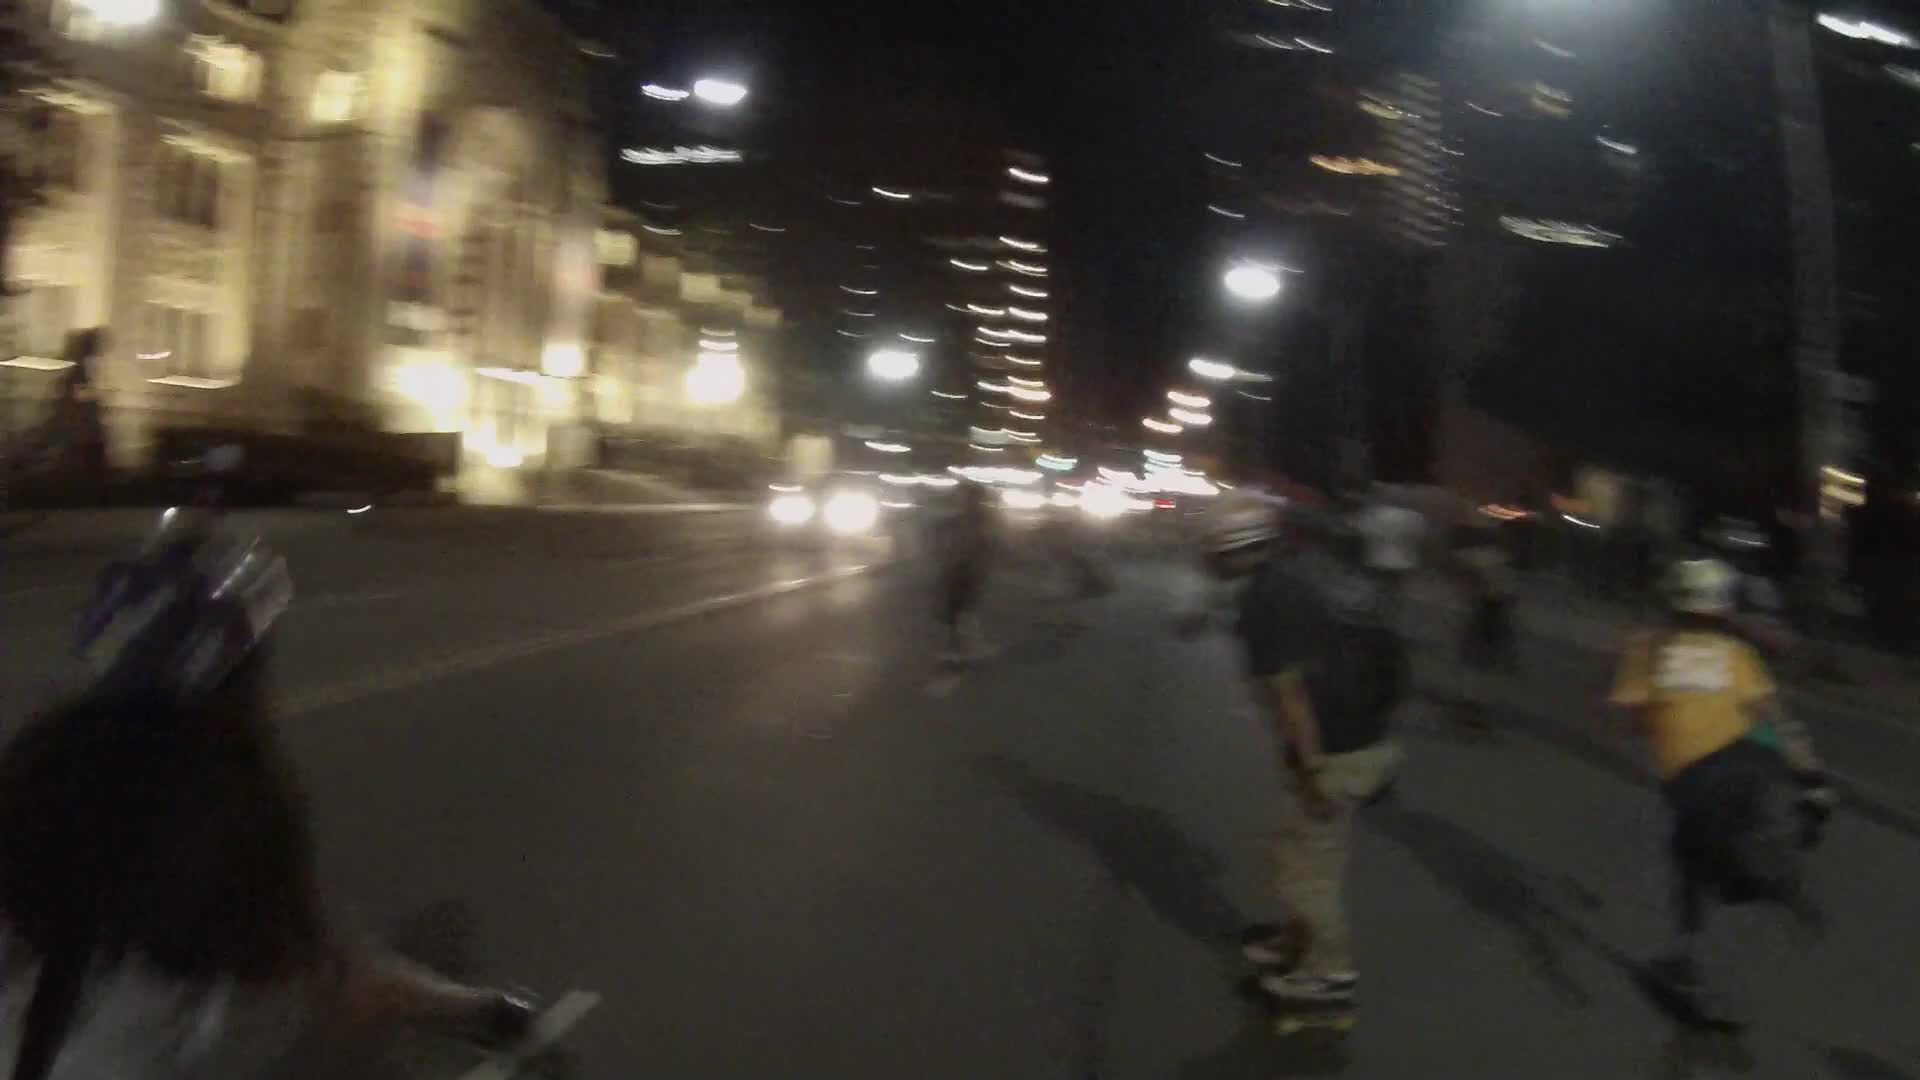 Barnes1111, People & Blogs, community, longboarding, rollyplanking, skateboarding, Longboarding in Toronto at night GIFs